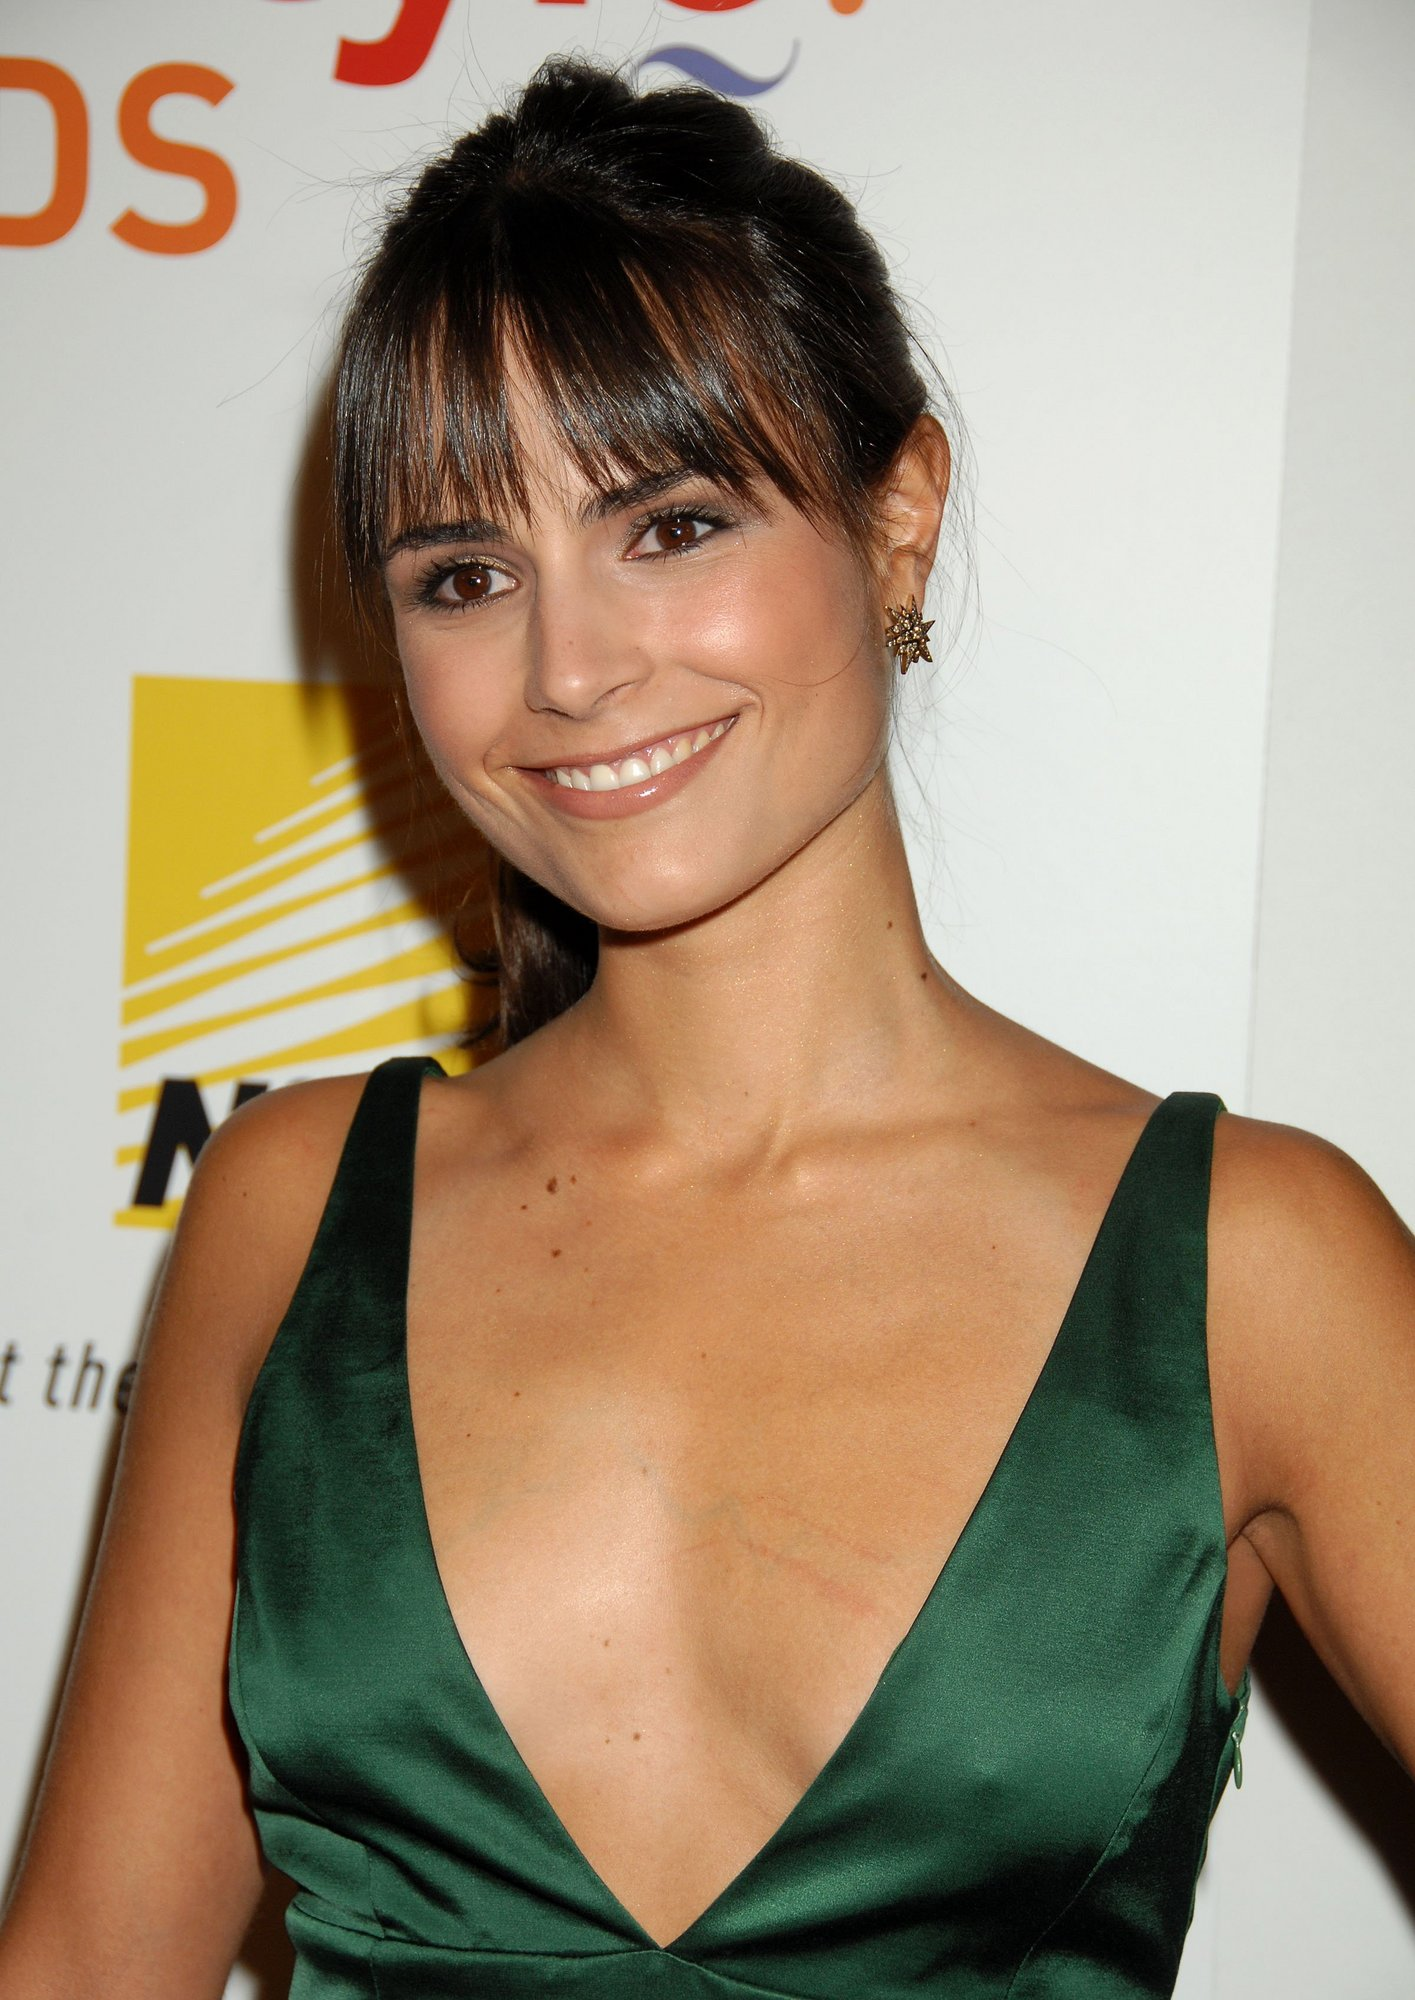 Jordana Brewster nudes (23 pictures) Ass, YouTube, see through